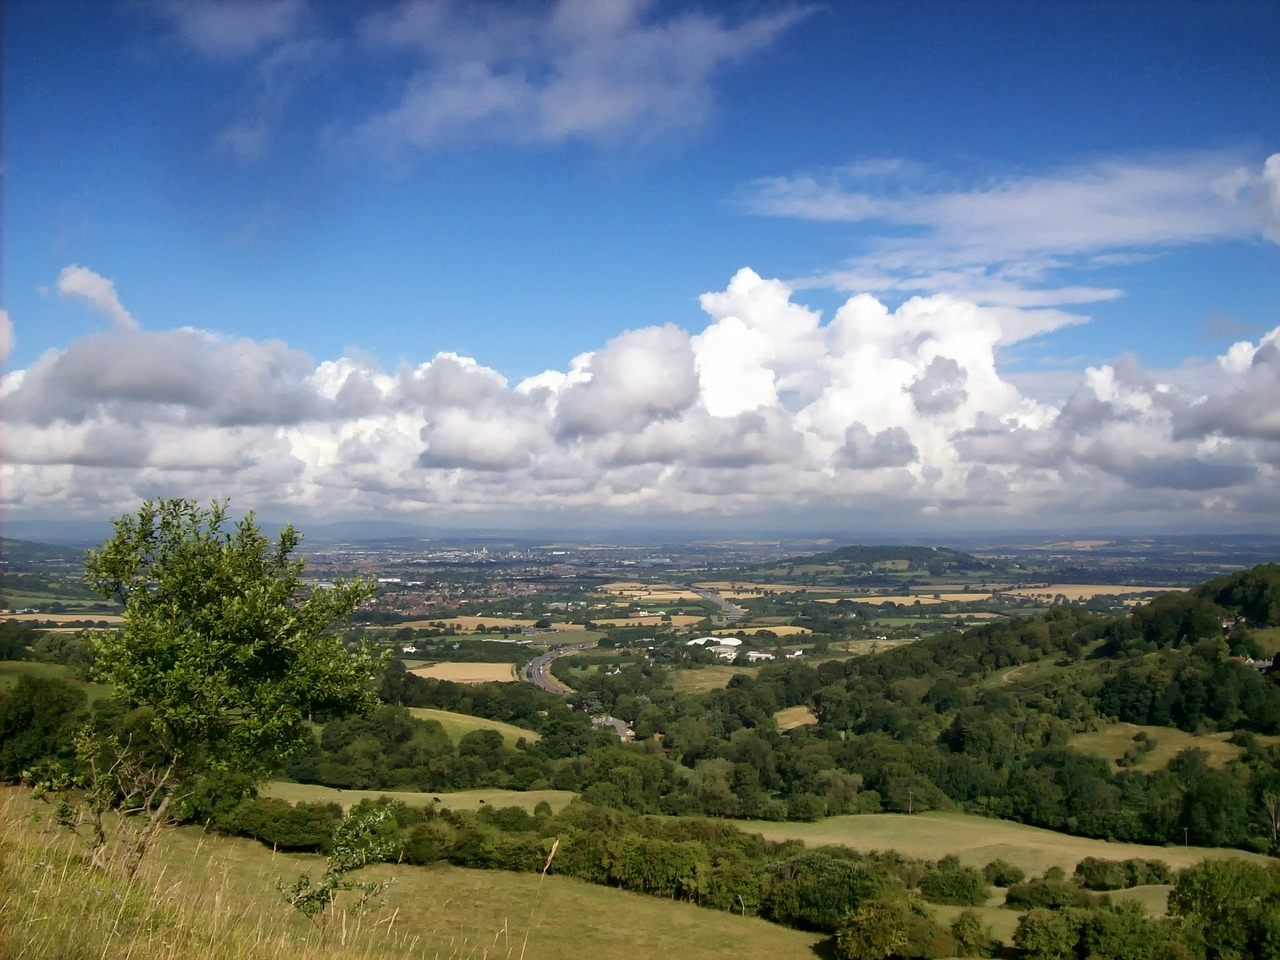 gloucestershire england great britain free photo